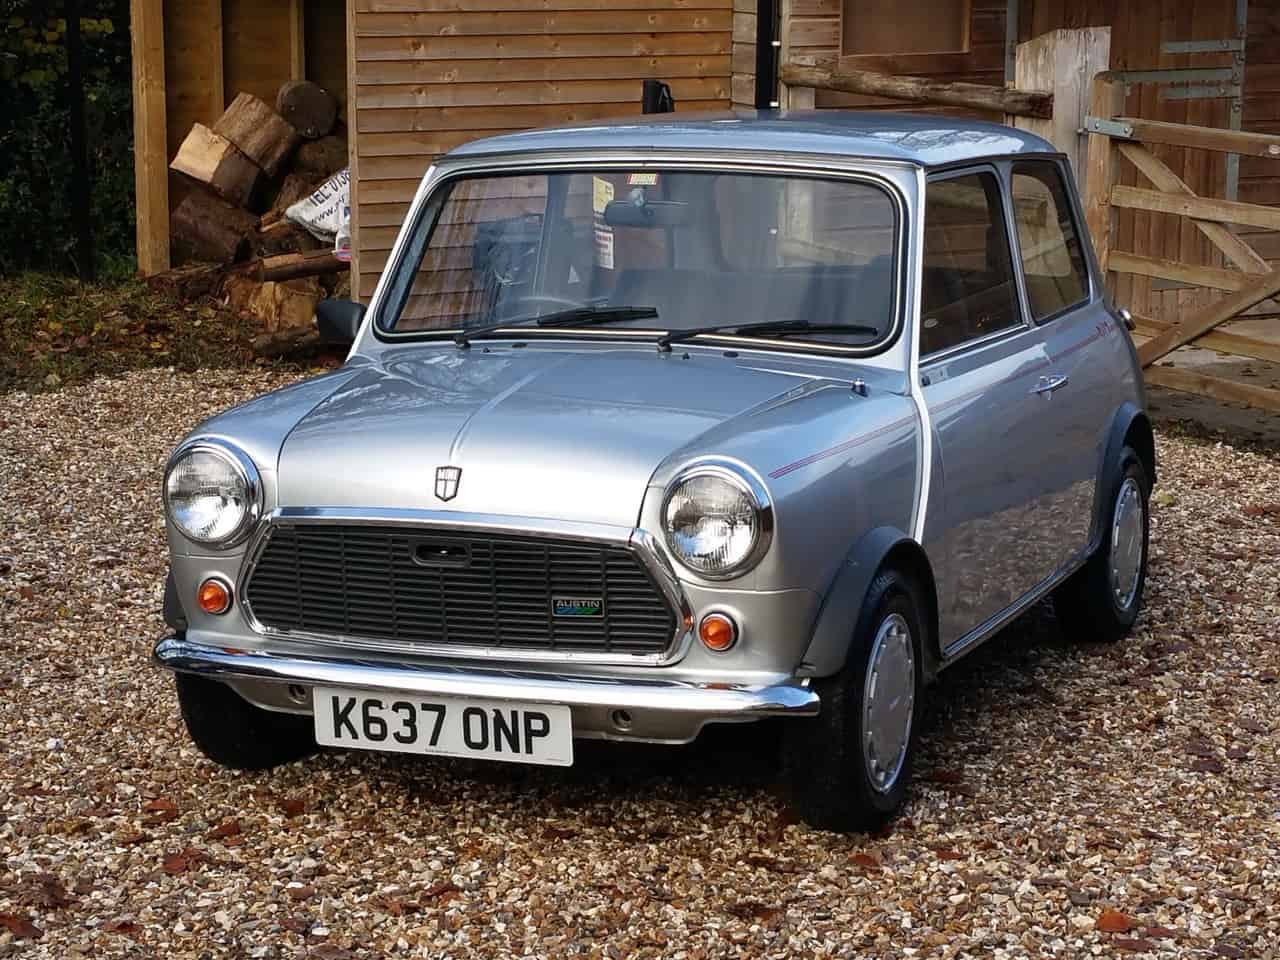 ** DEPOSIT PAID ** Amazing 'Time Warp' Austin Mini Ritz On Just 3820 Miles In 35 Years!!